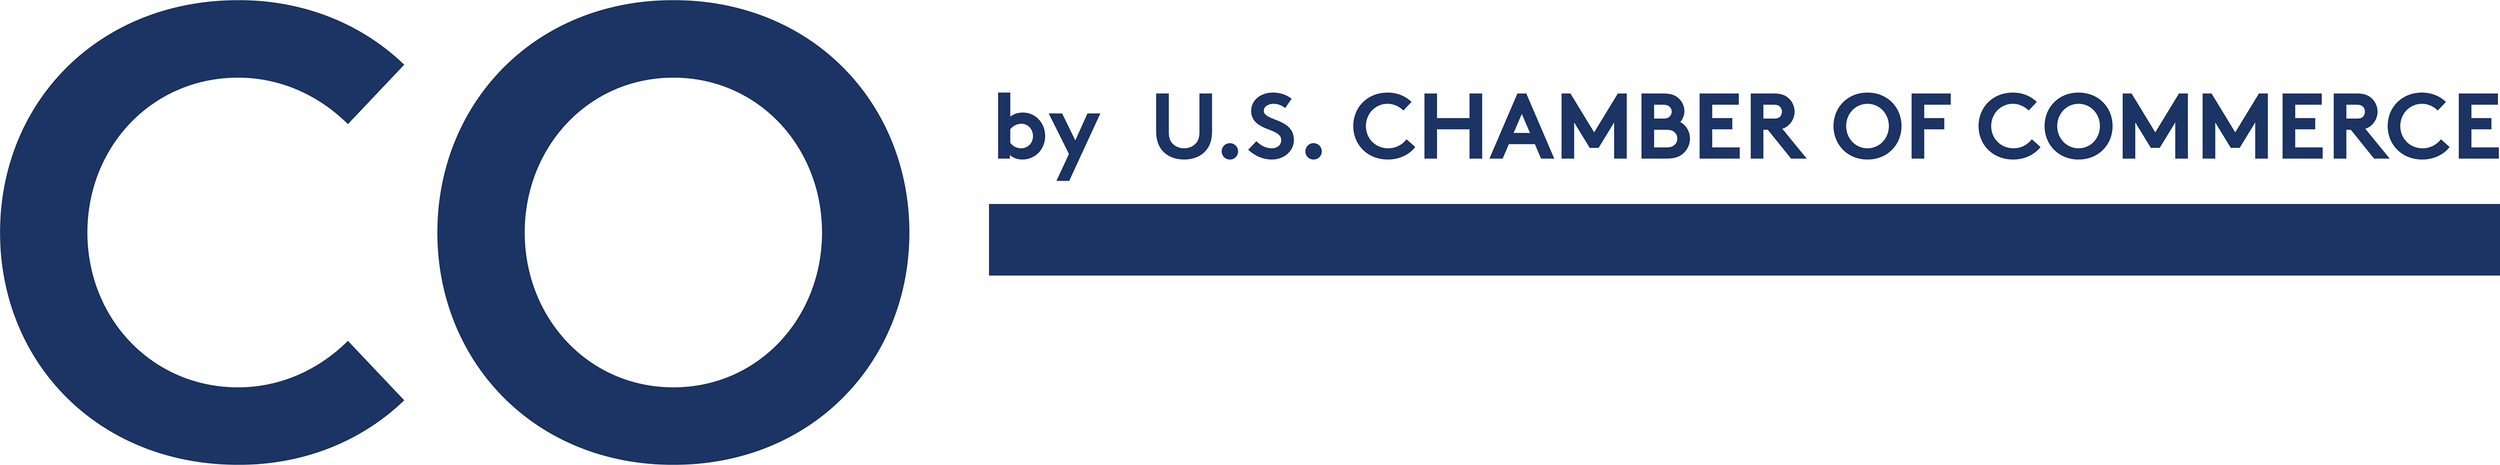 CO by US Chamber of Commerce.png